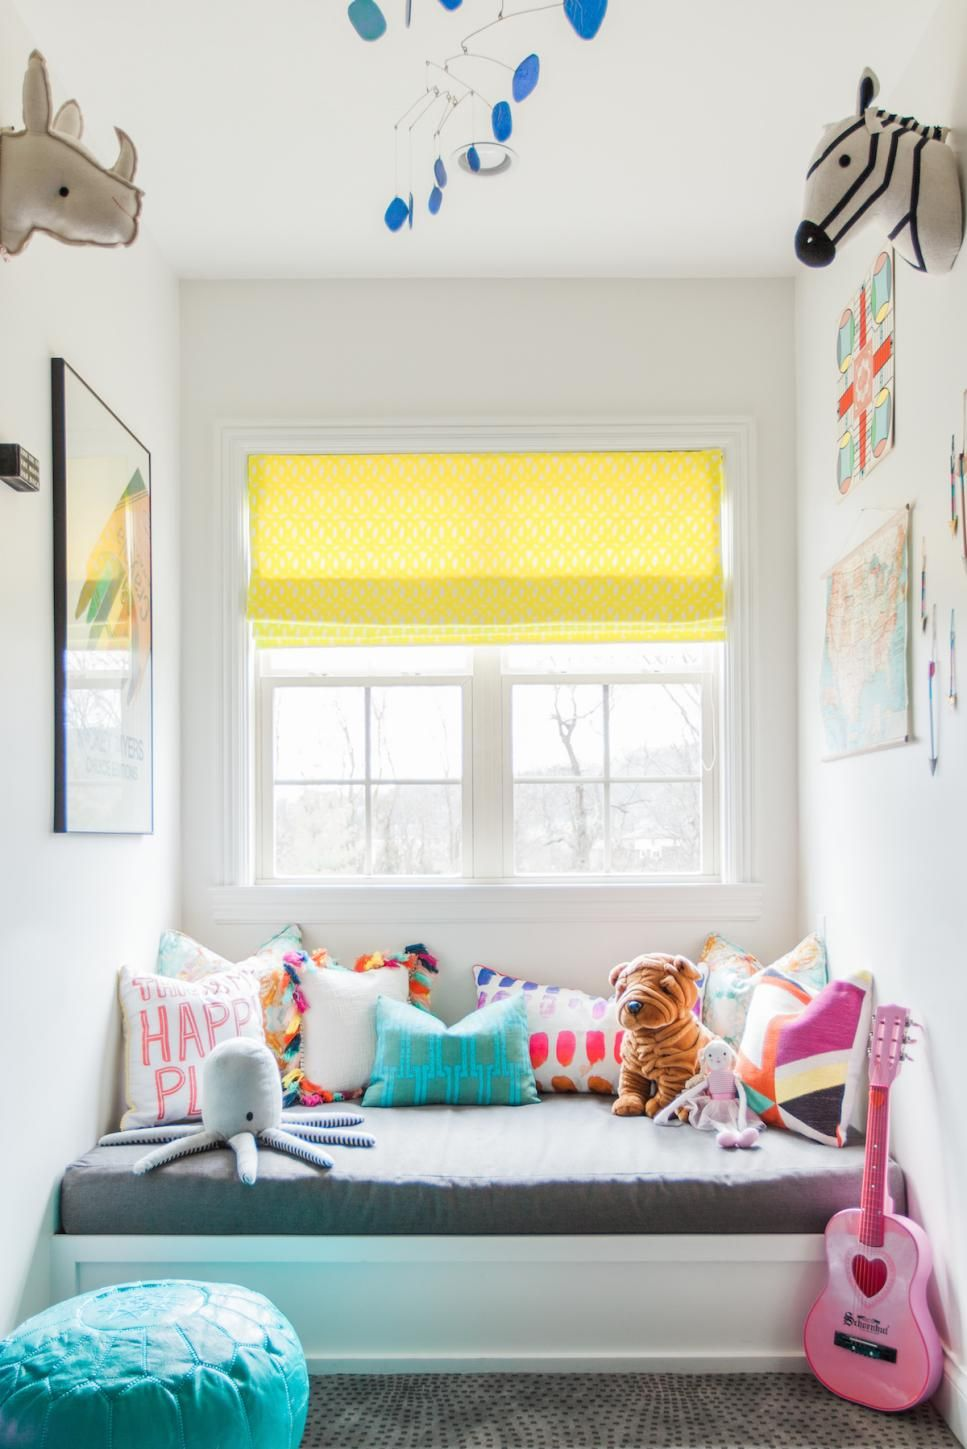 How to Decorate a Large Blank Wall | Map globe, Playrooms and Hgtv